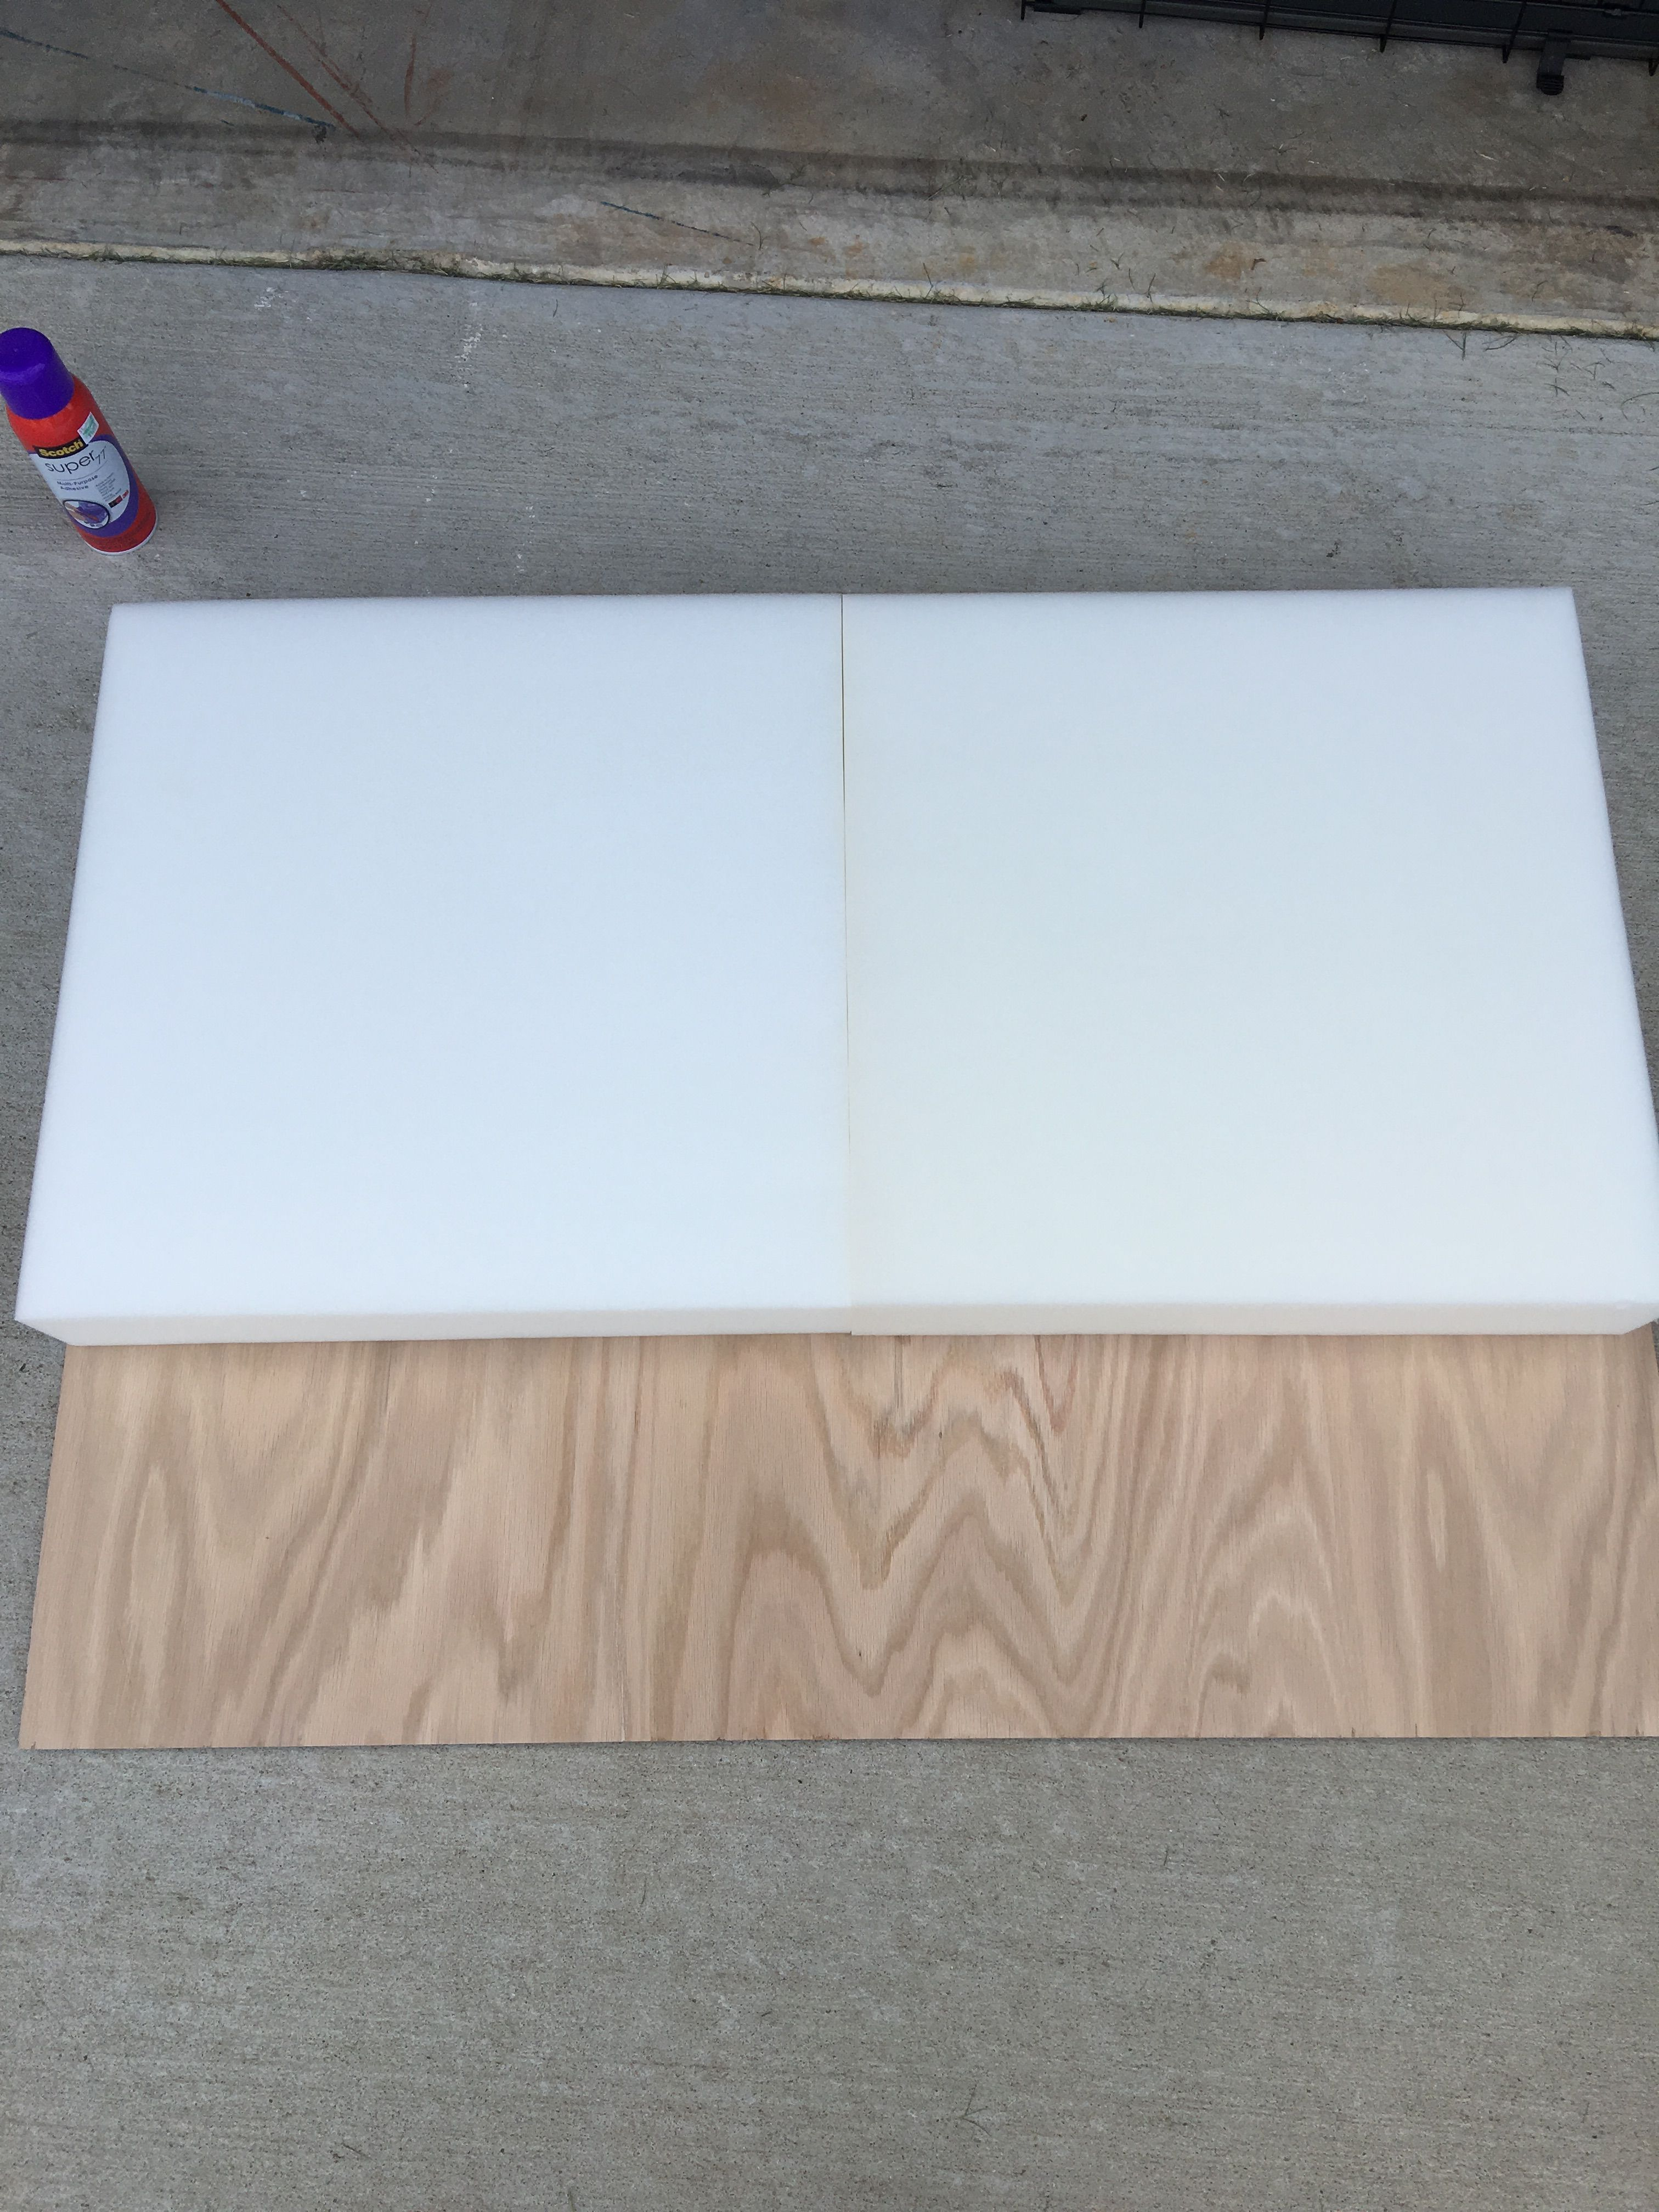 Use spray adhesive to attach foam squares to plywood Consider